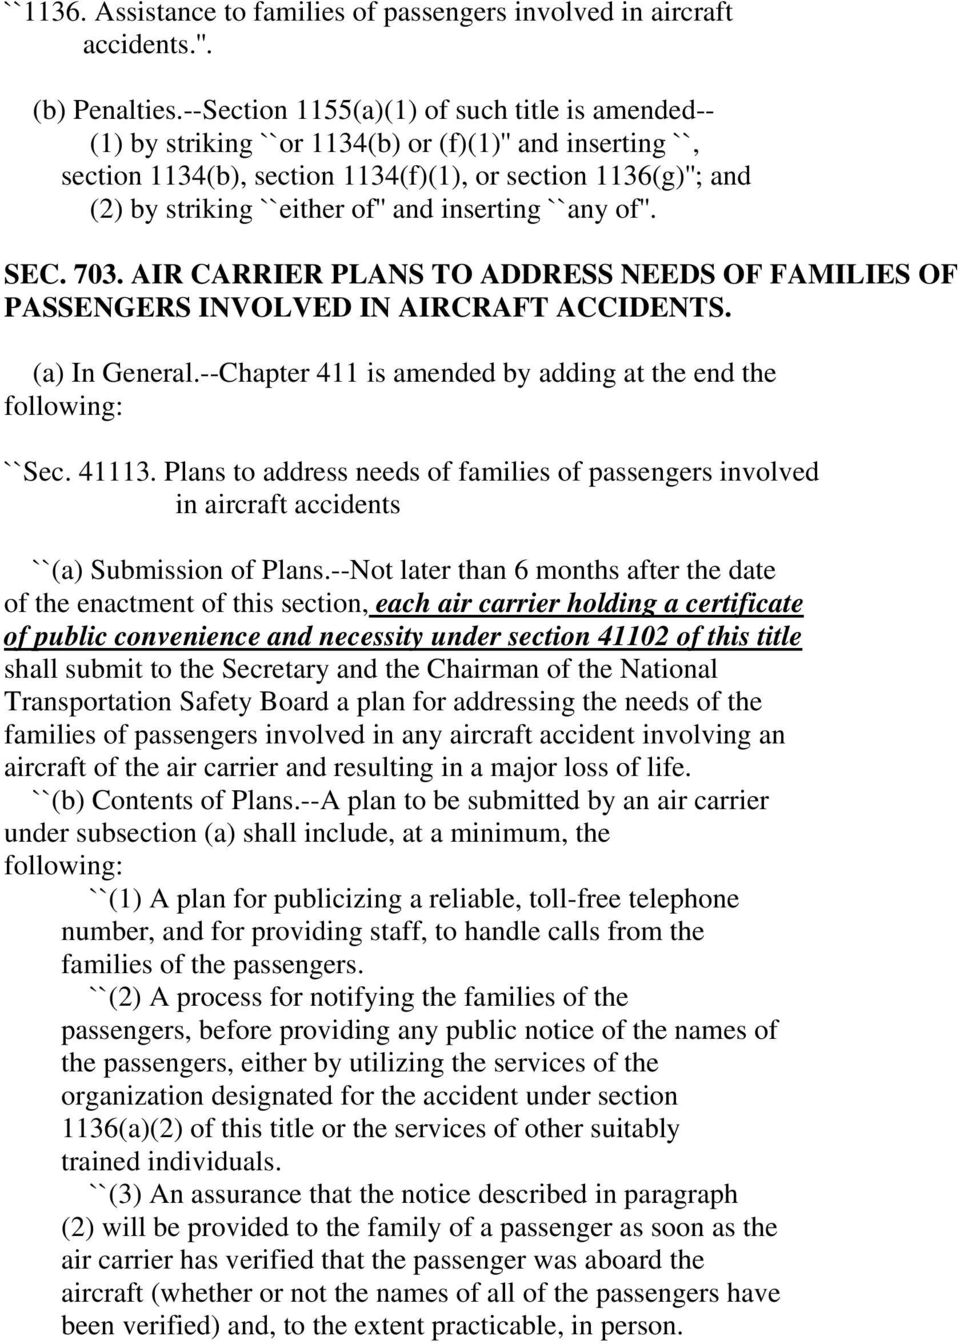 and inserting ``any of''. SEC. 703. AIR CARRIER PLANS TO ADDRESS NEEDS OF FAMILIES OF PASSENGERS INVOLVED IN AIRCRAFT ACCIDENTS. (a) In General.